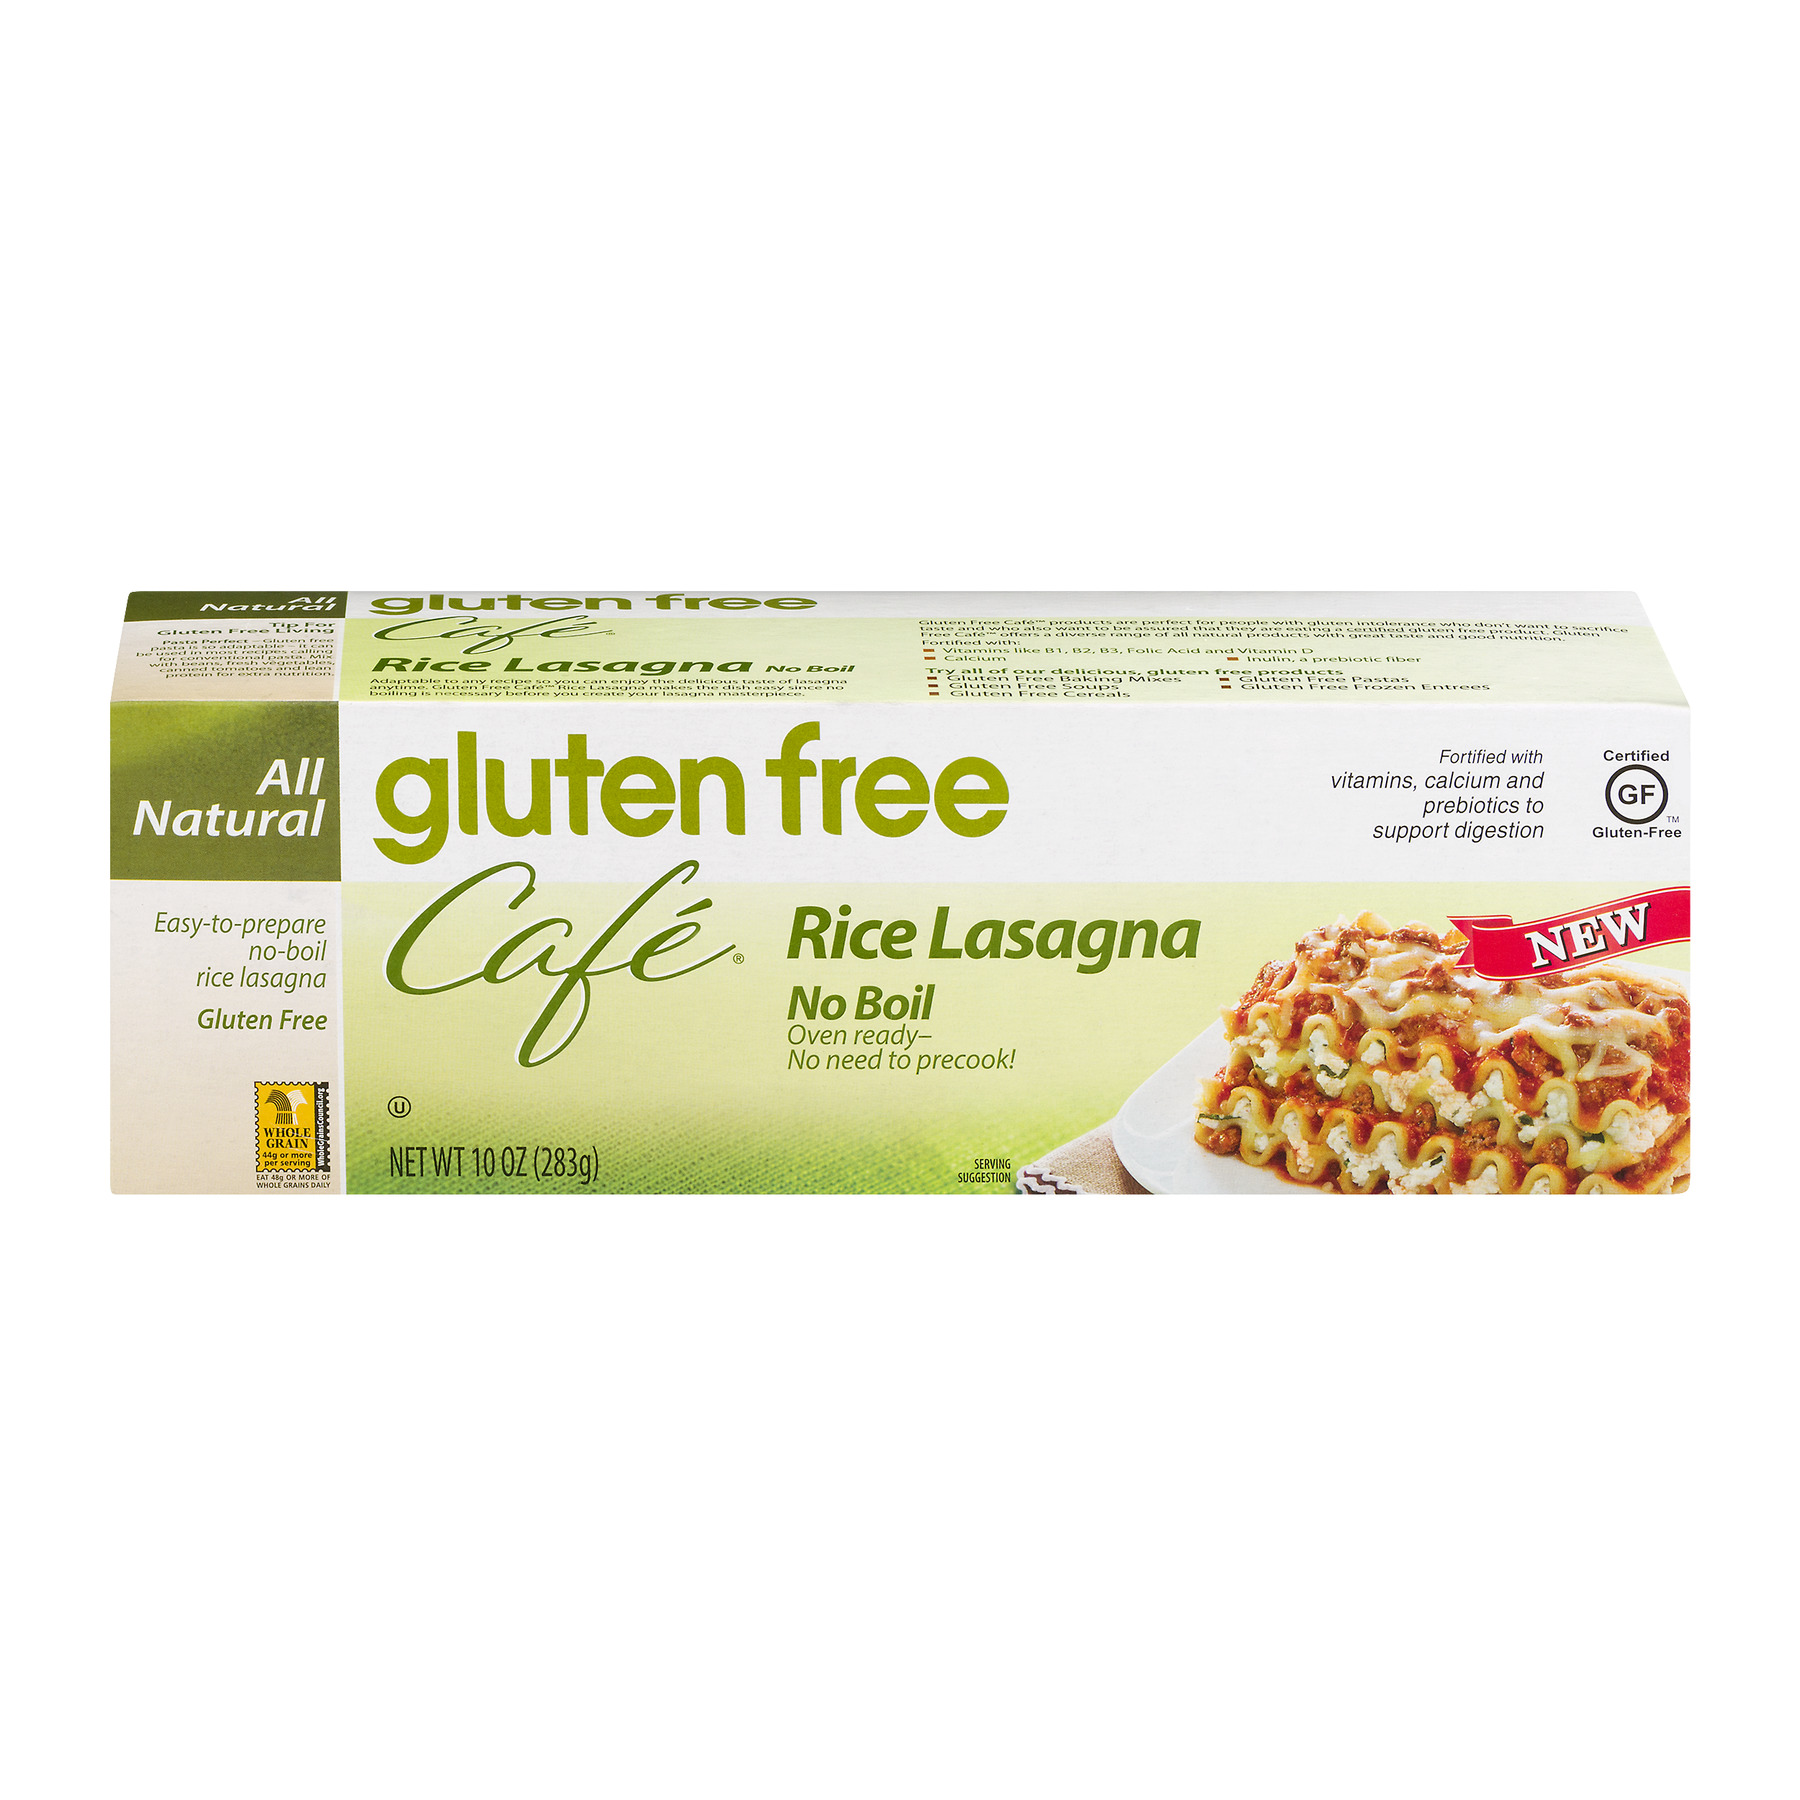 Cafe' Rice Lasagna Gluten Free No Boil, 10.0 OZ by The Hain Celestial Group, Inc.